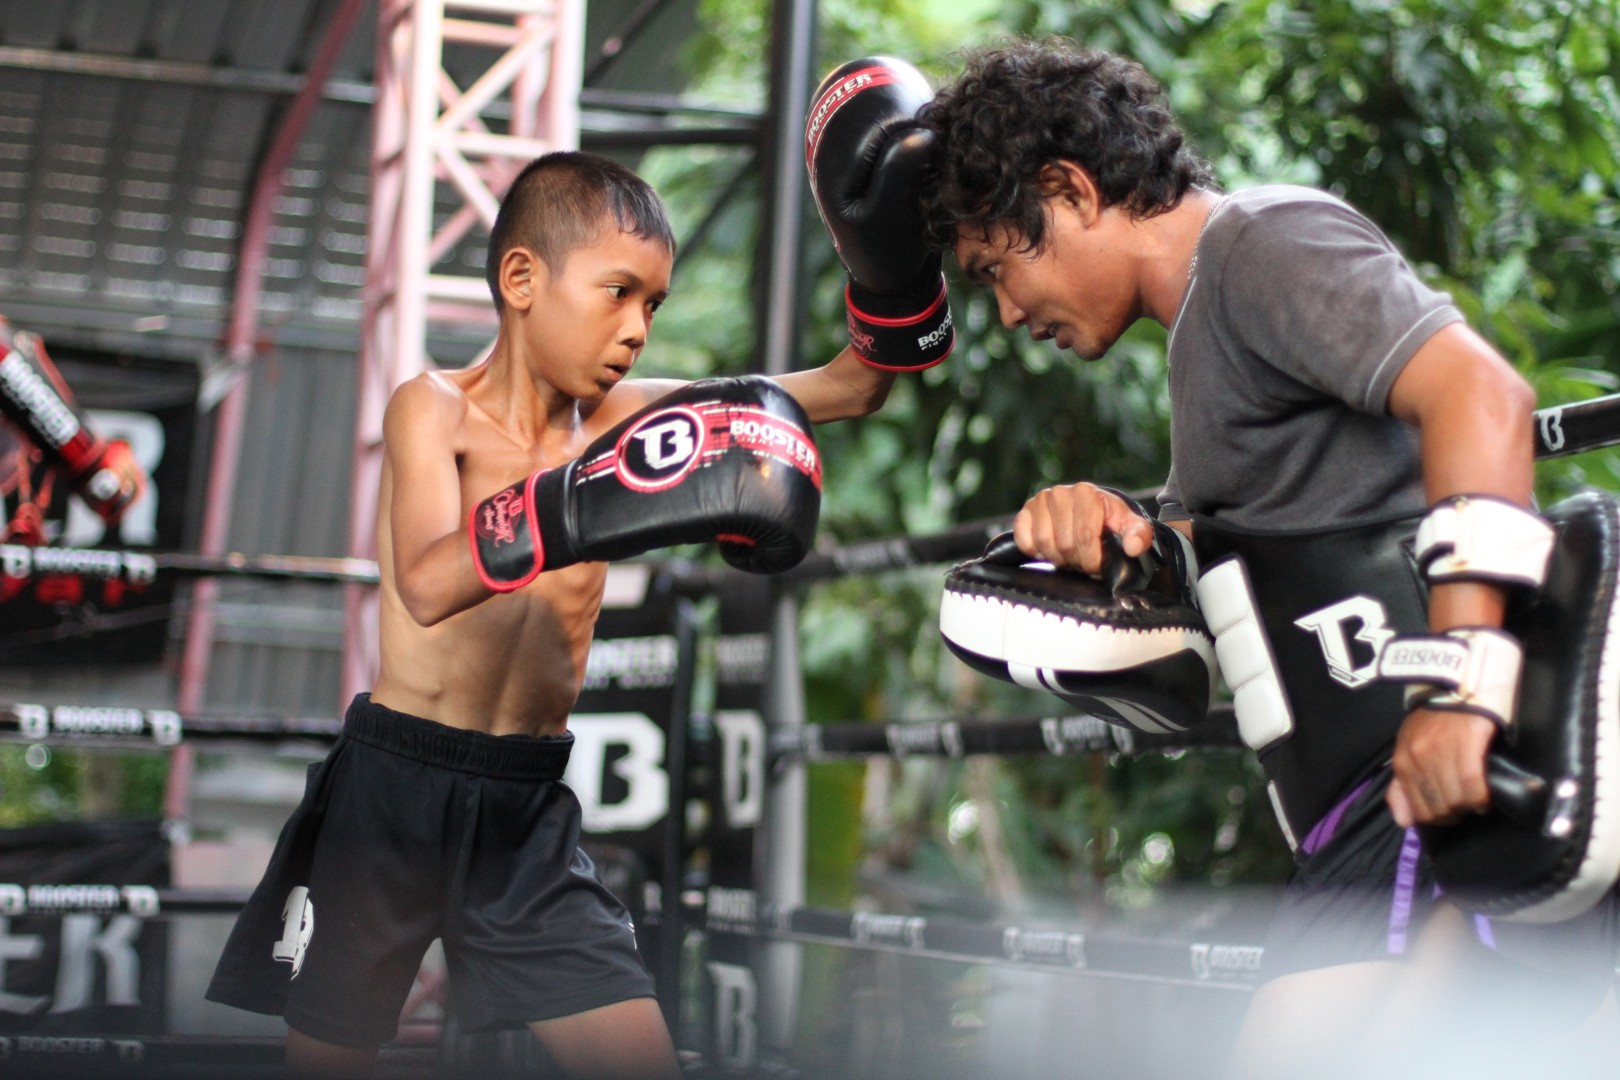 c63b4363b Muay Thai fight couple s non-profit gym gives sense of purpose to Thai  village children